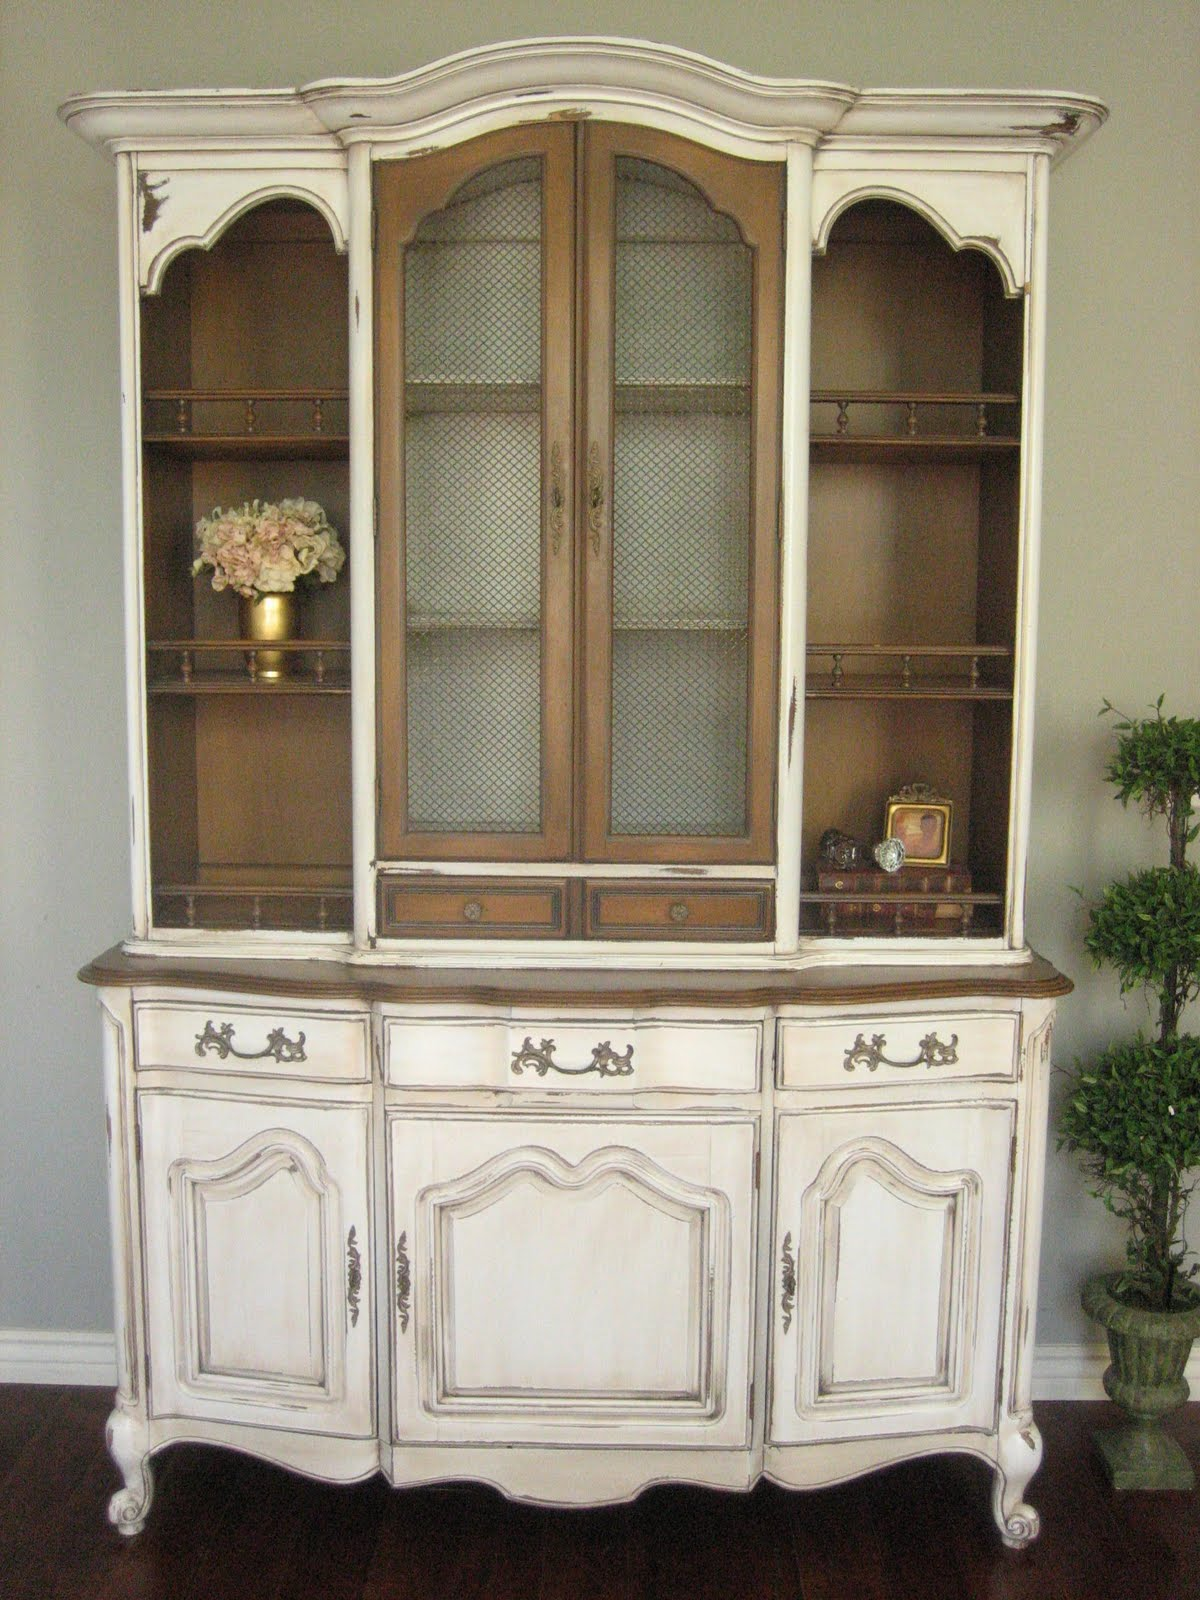 European Paint Finishes French Provincial Hutch : EPF FPHutch116 from europaintfinishes.blogspot.co.uk size 1200 x 1600 jpeg 258kB